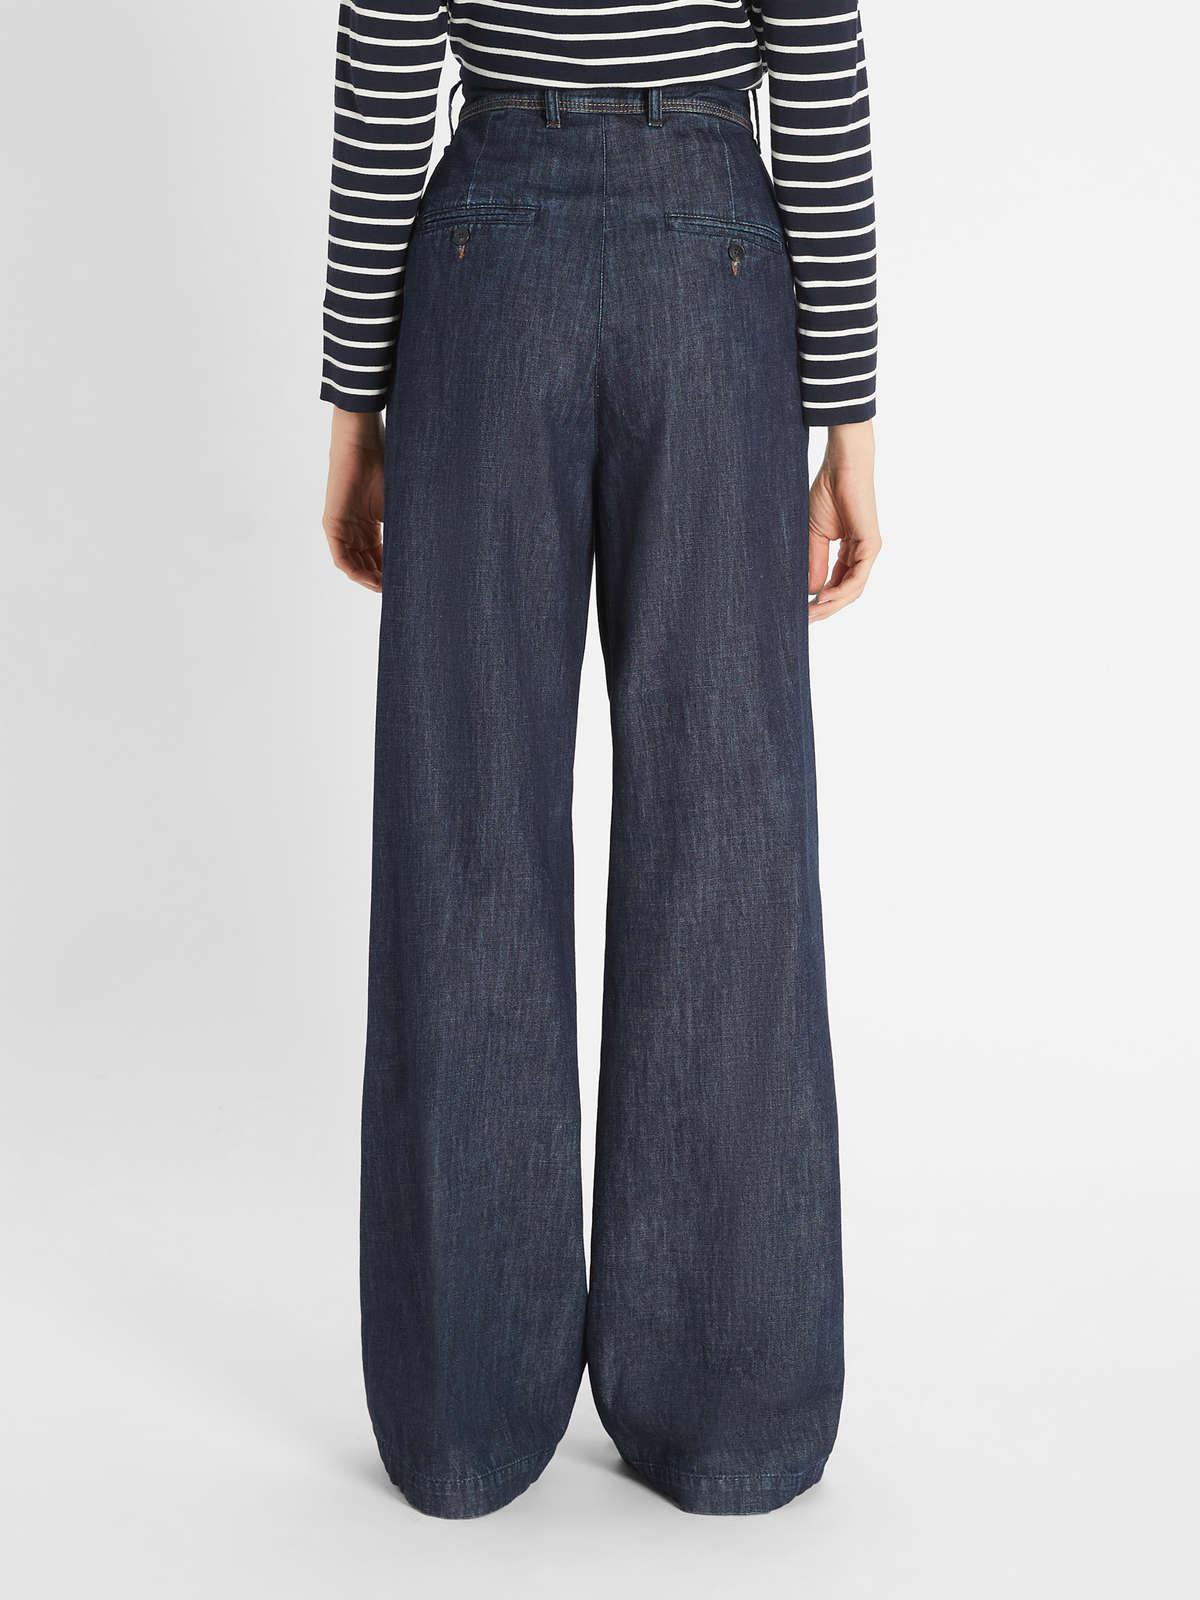 Womens Max Mara Trousers And Jeans   Cotton Denim Trousers Midnightblue